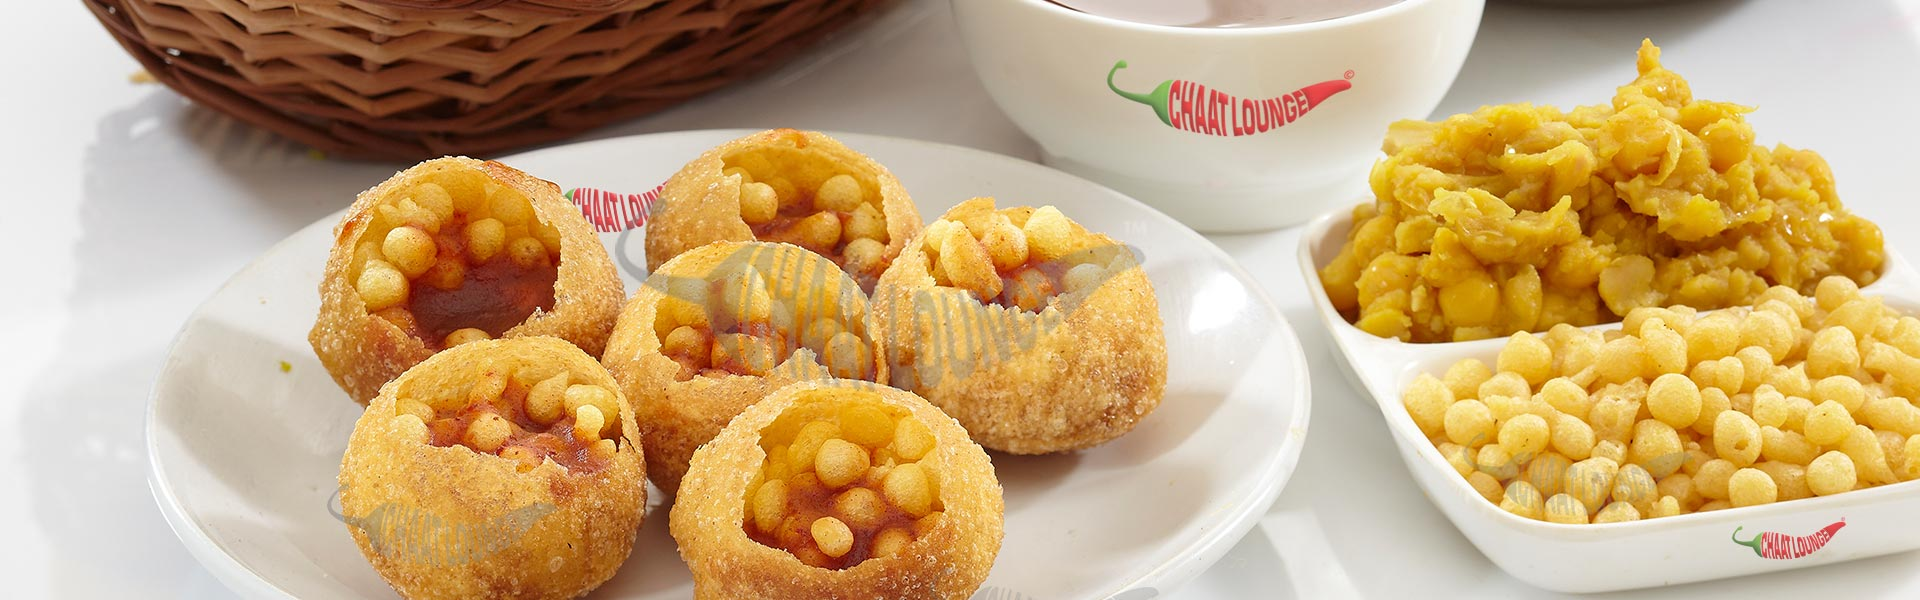 Chaat Franchise In India, Chaat Lounge Franchise Company